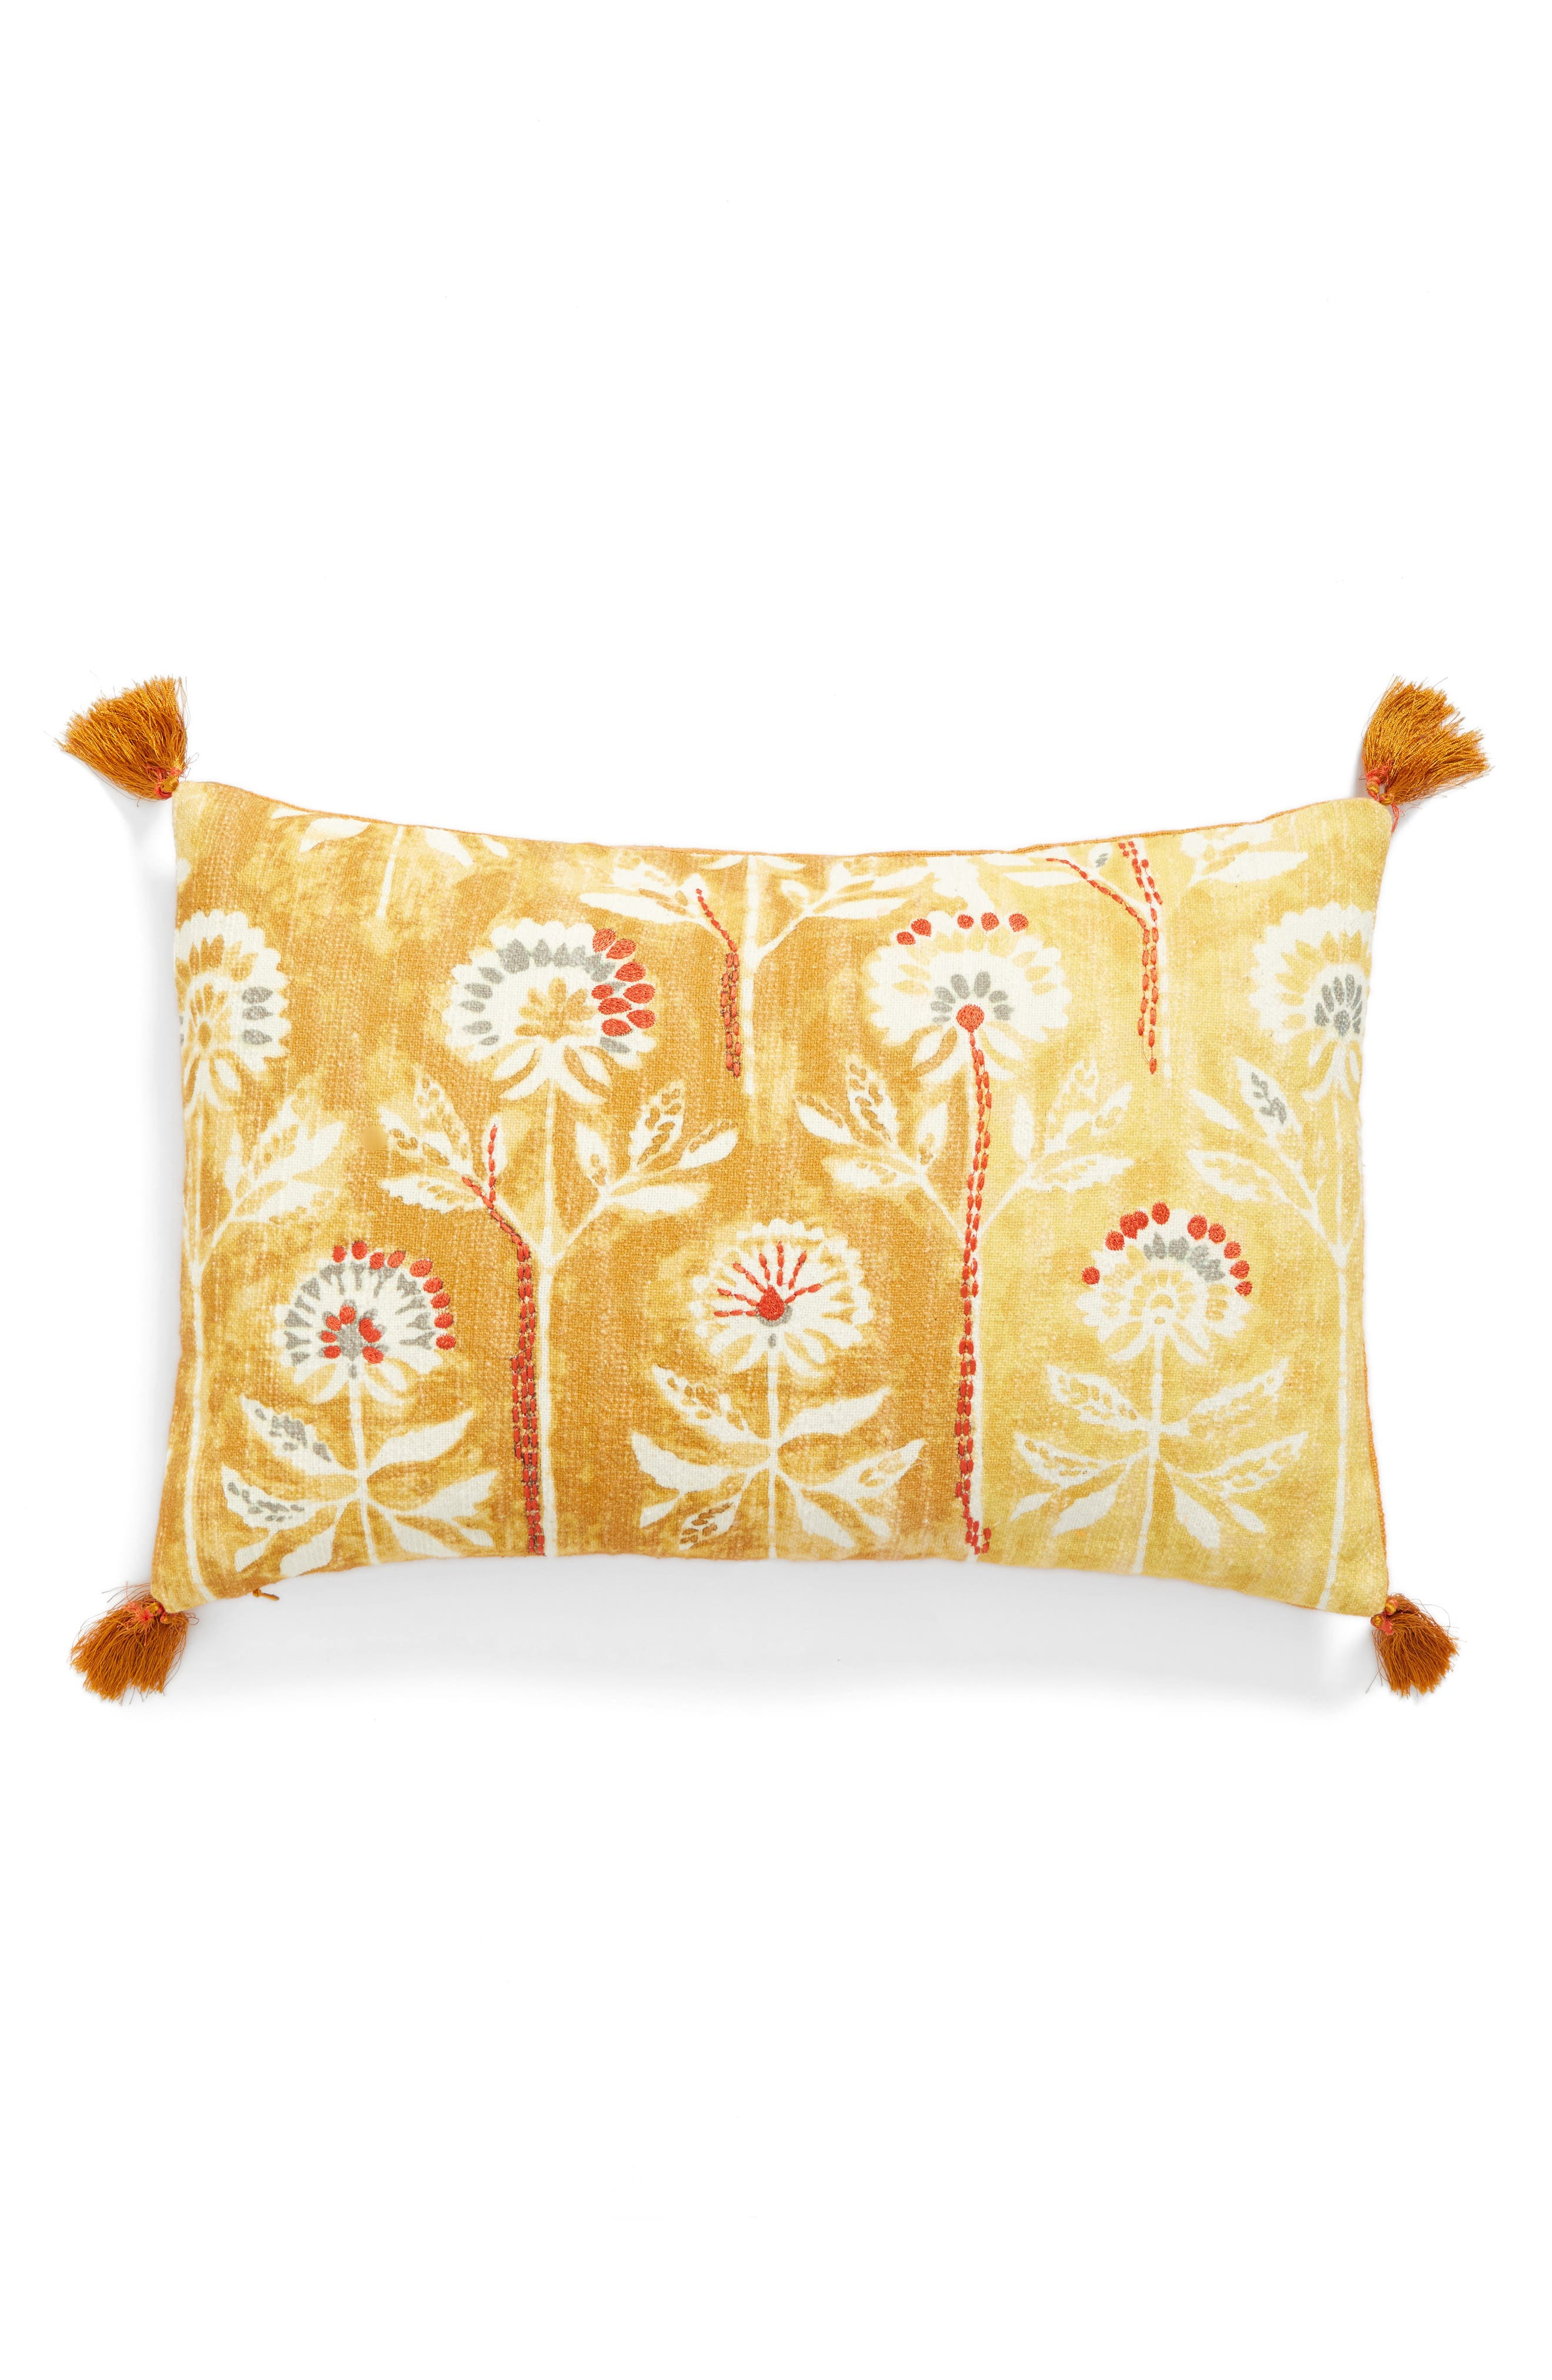 Watercolor Floral Accent Pillow,                             Main thumbnail 1, color,                             Yellow Spruce Multi